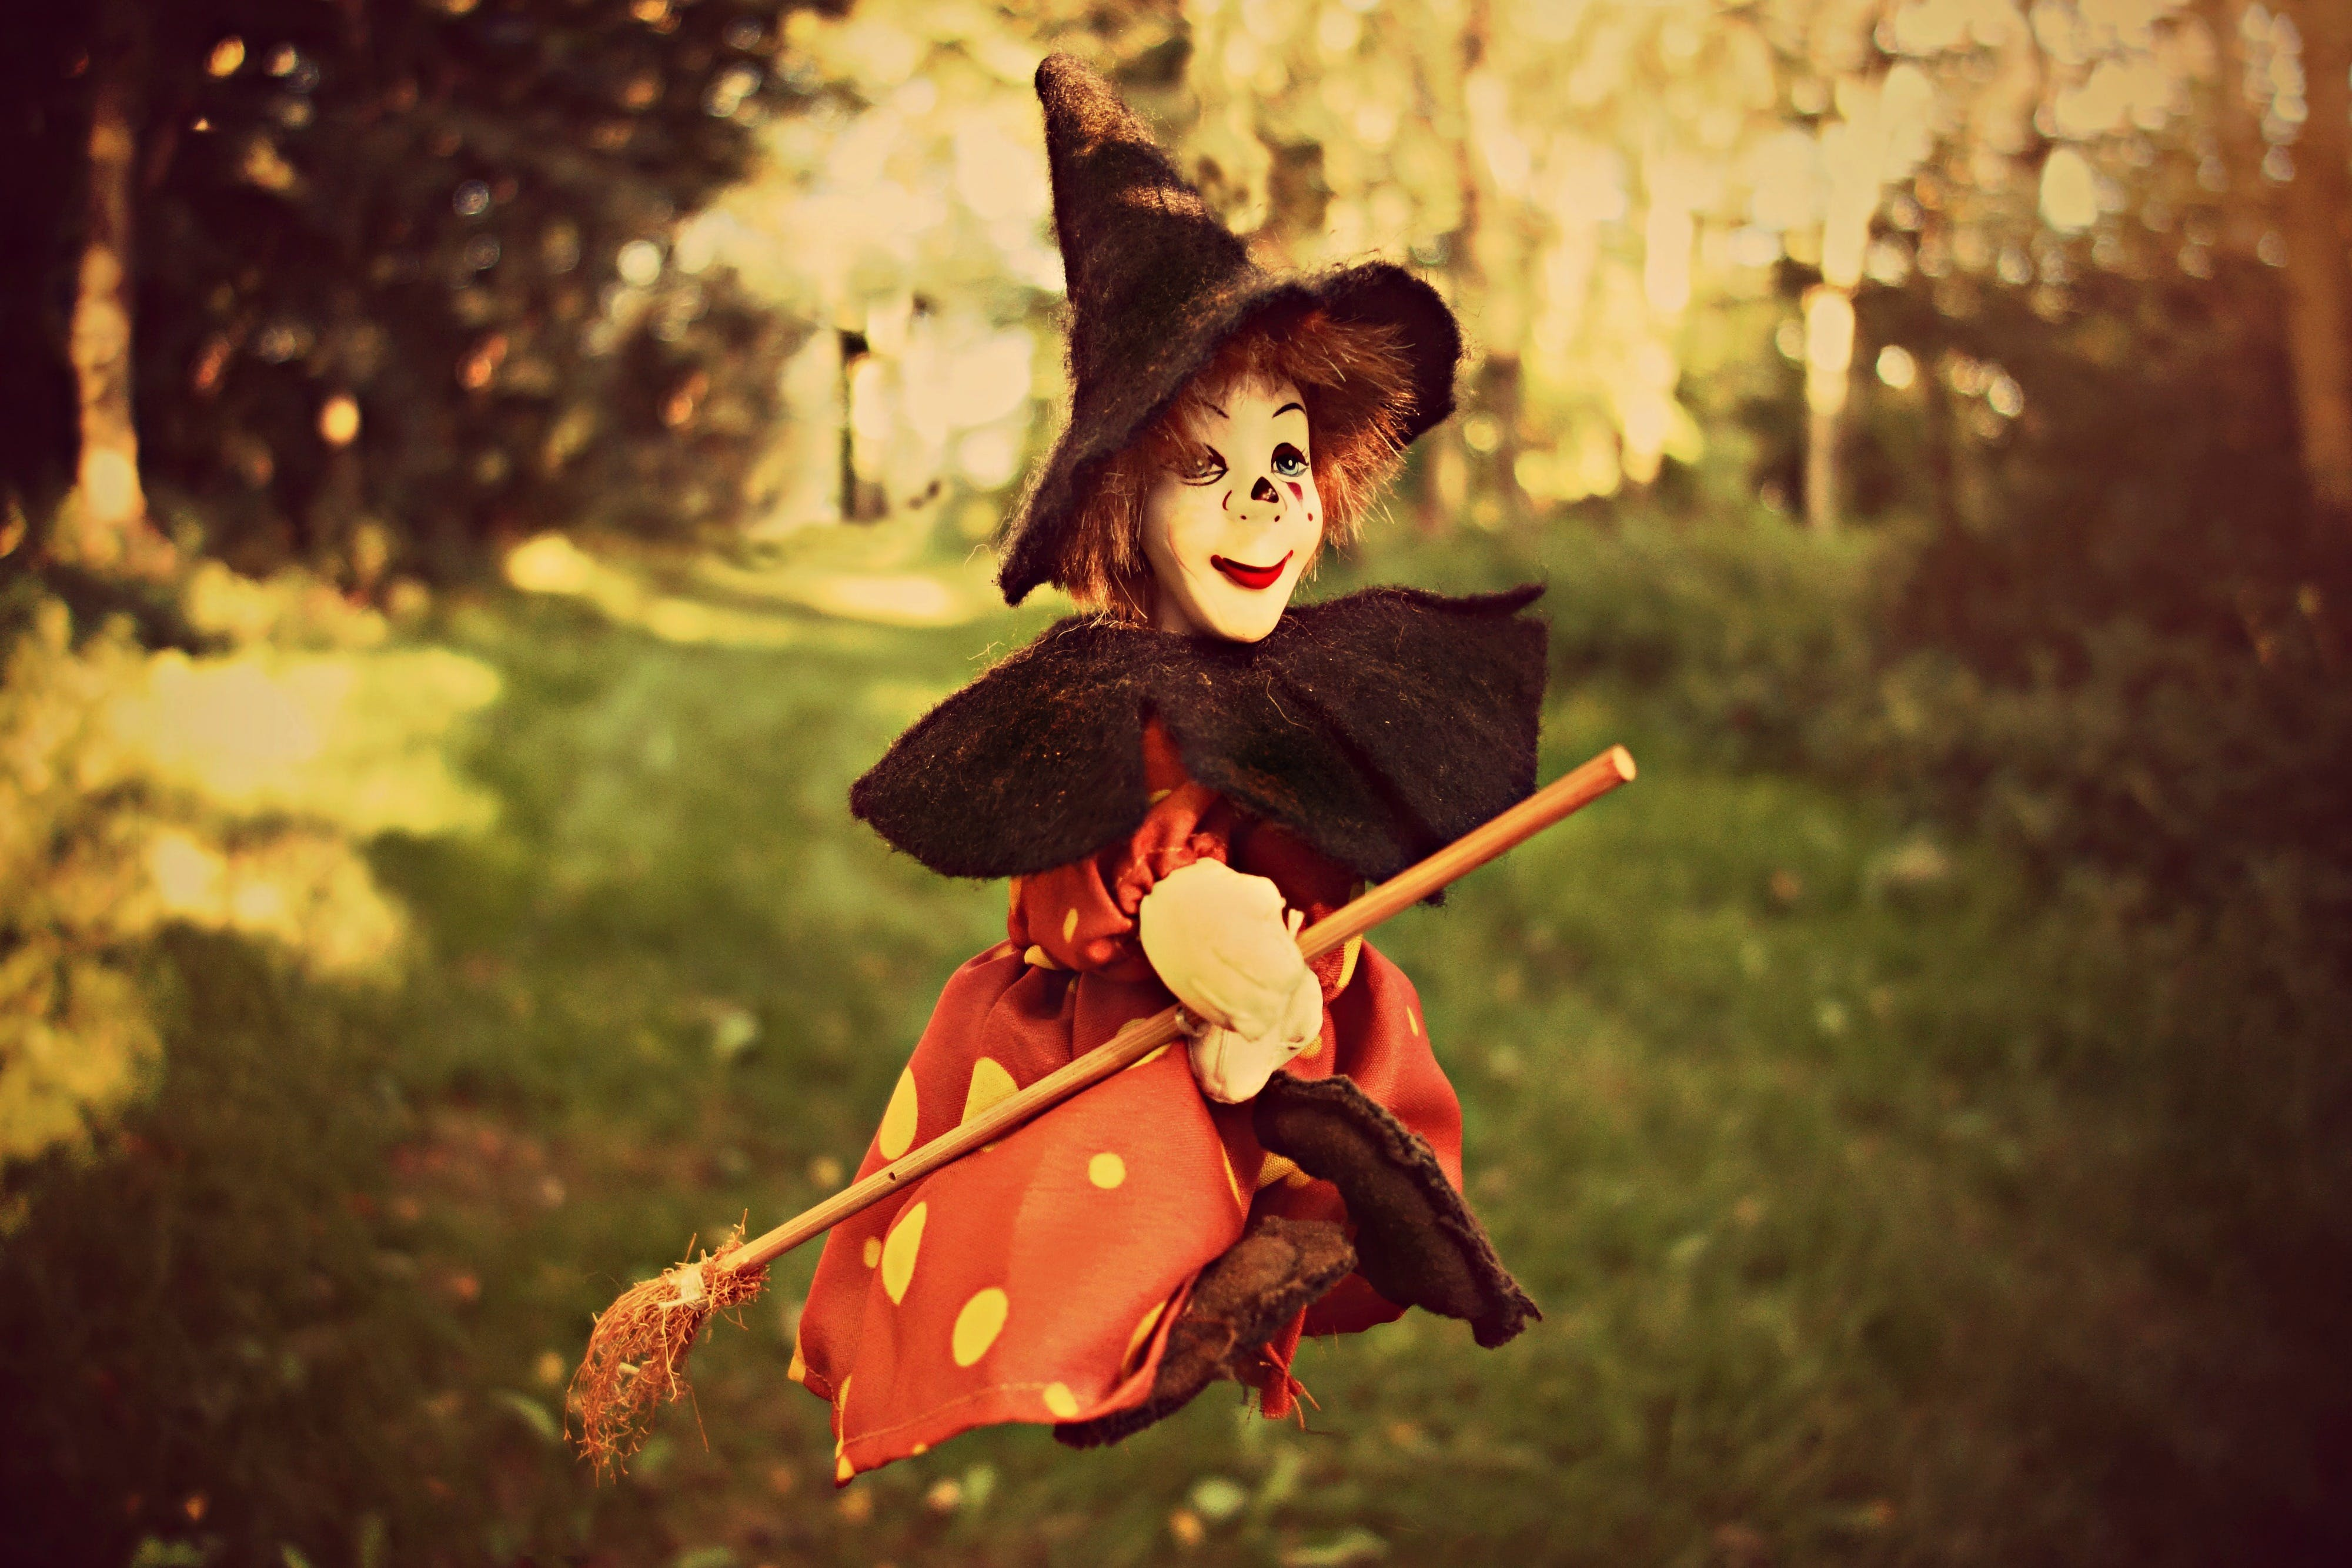 of broom, doll, forest, toy